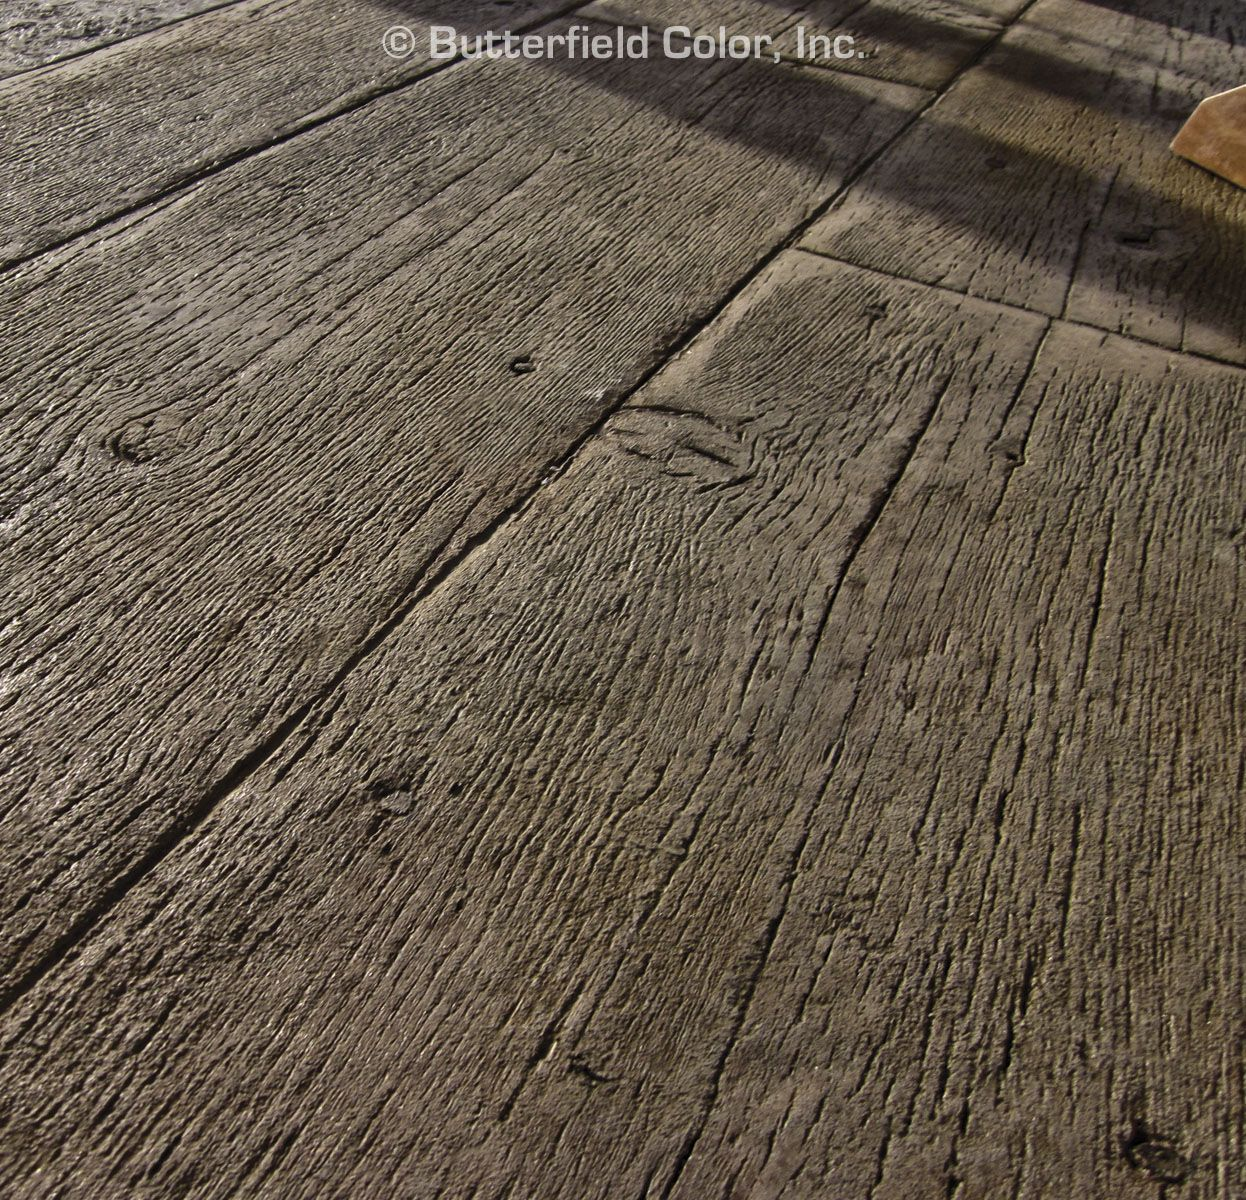 Butterfield Color Gilpin S Falls Bridge Wood Plank Concrete Stamps